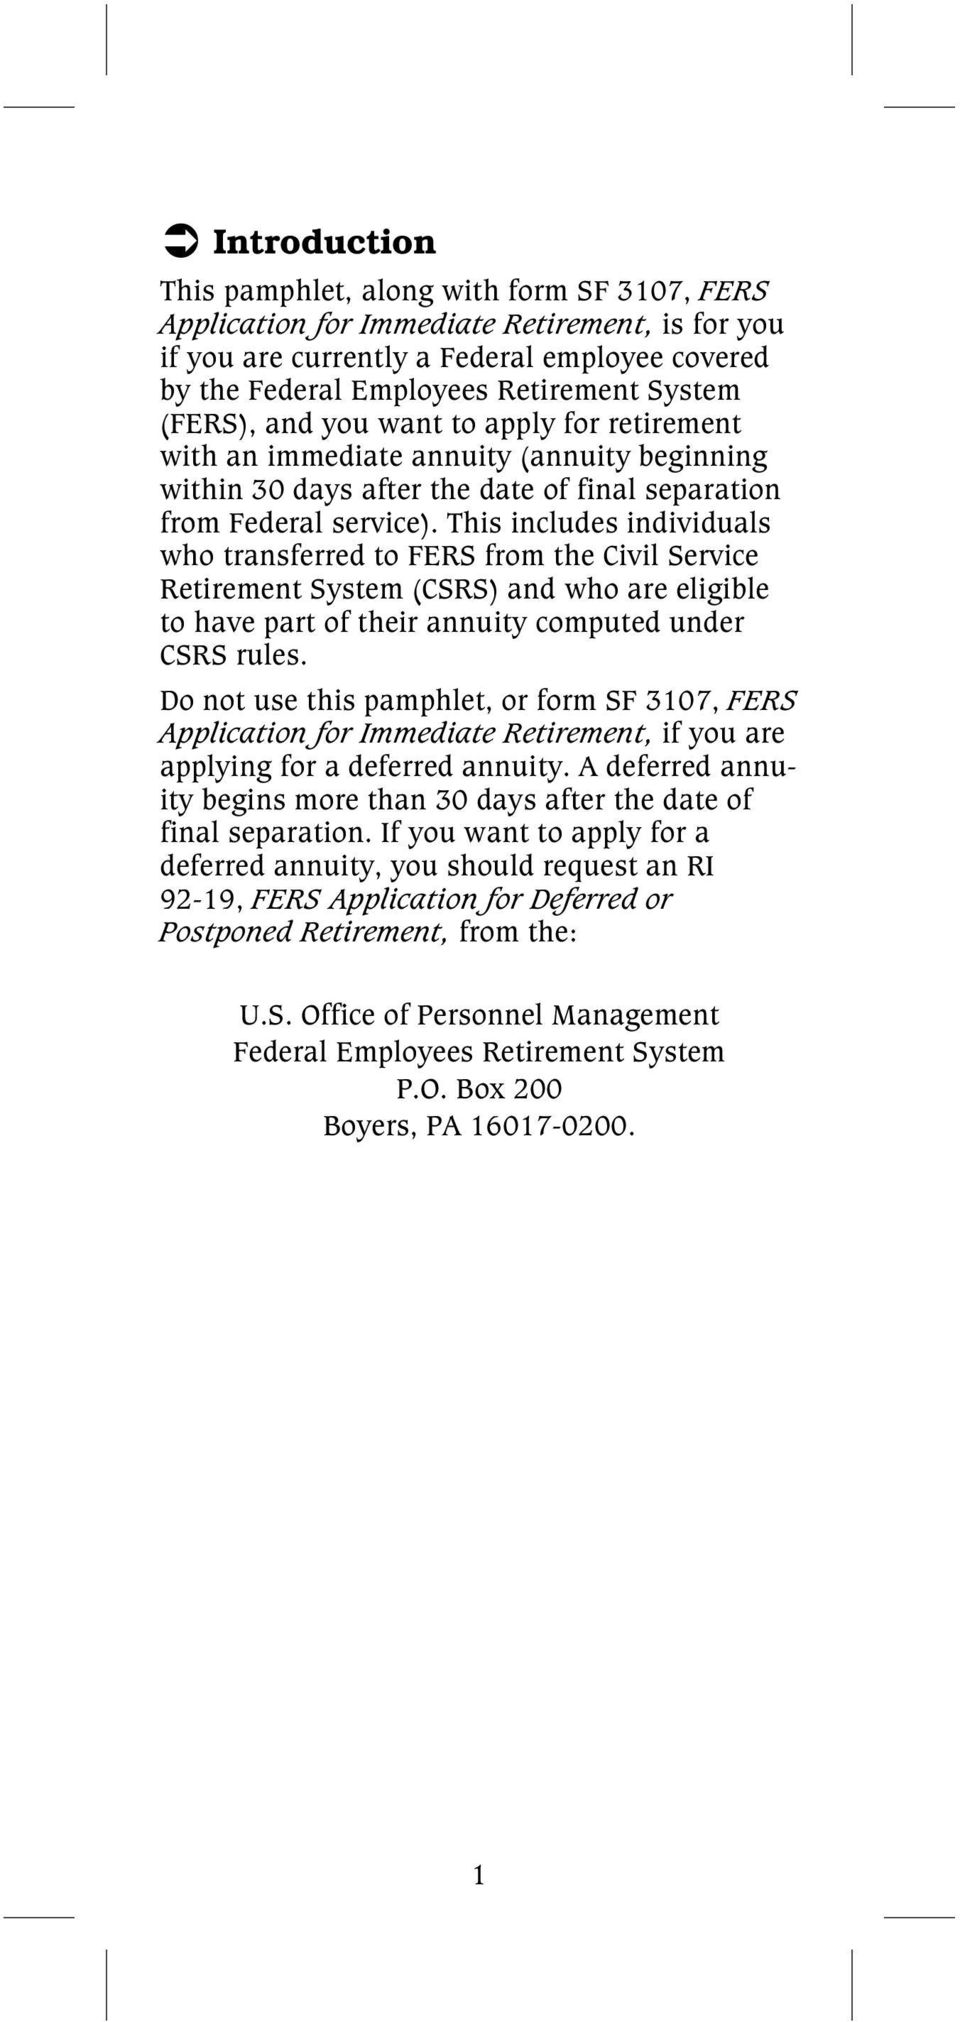 This includes individuals who transferred to FERS from the Civil Service Retirement System (CSRS) and who are eligible to have part of their annuity computed under CSRS rules.